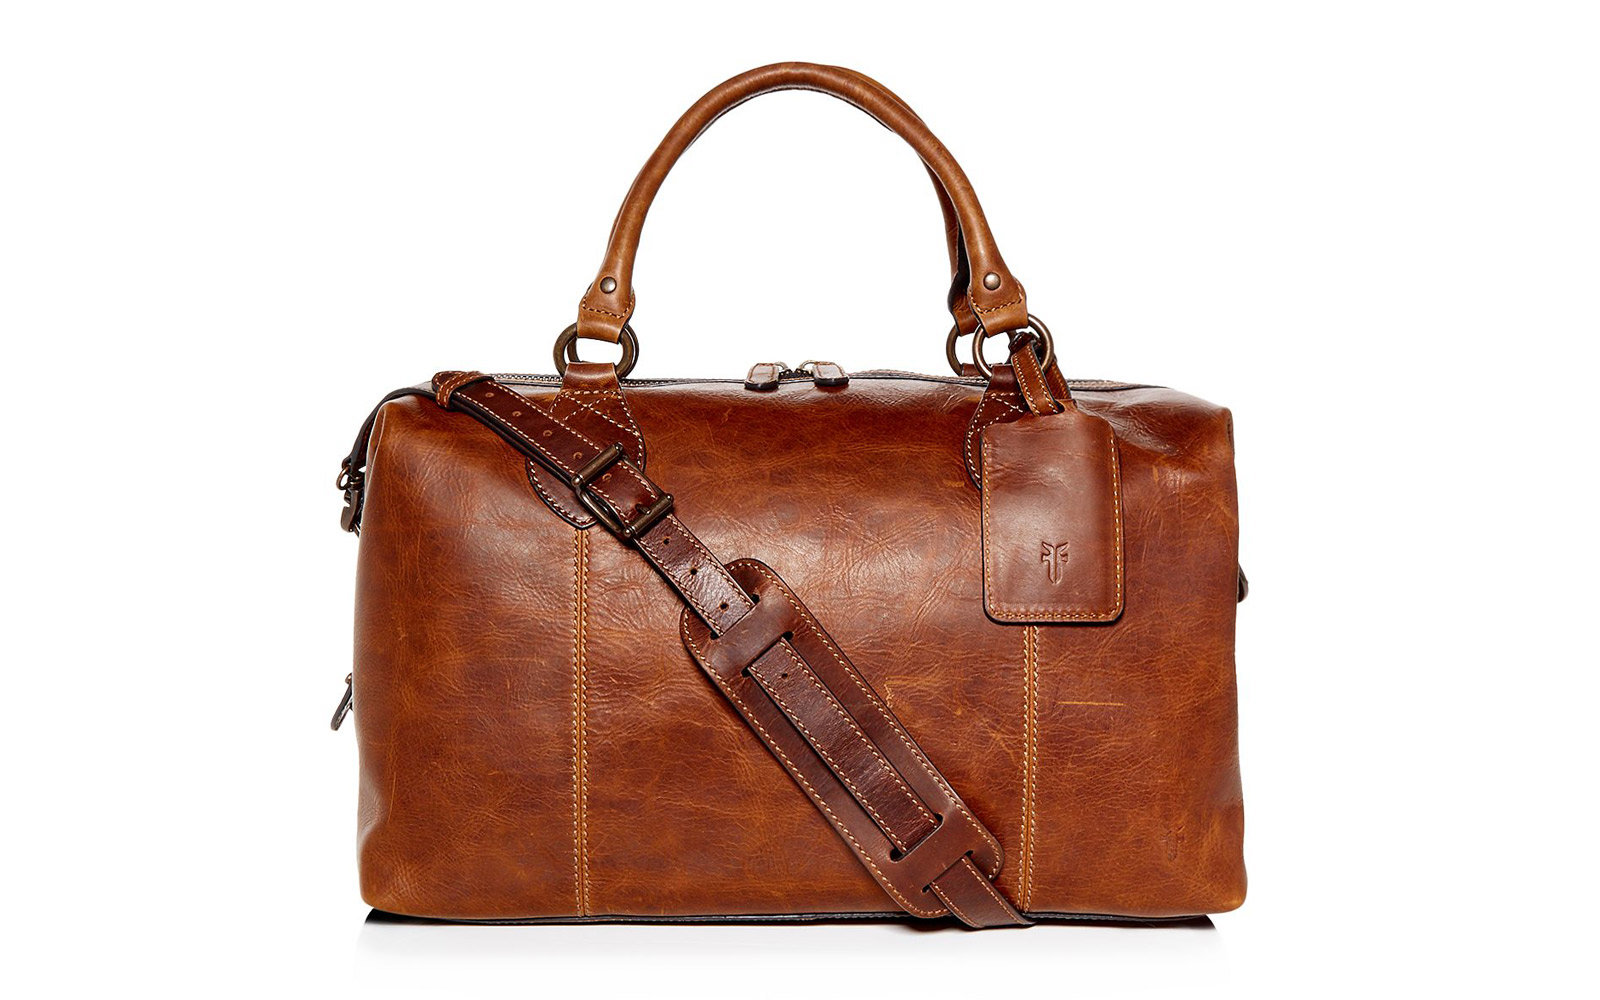 53d269c2c Frye Logan Leather Overnight Bag. Frye Duffel Bag for Travel